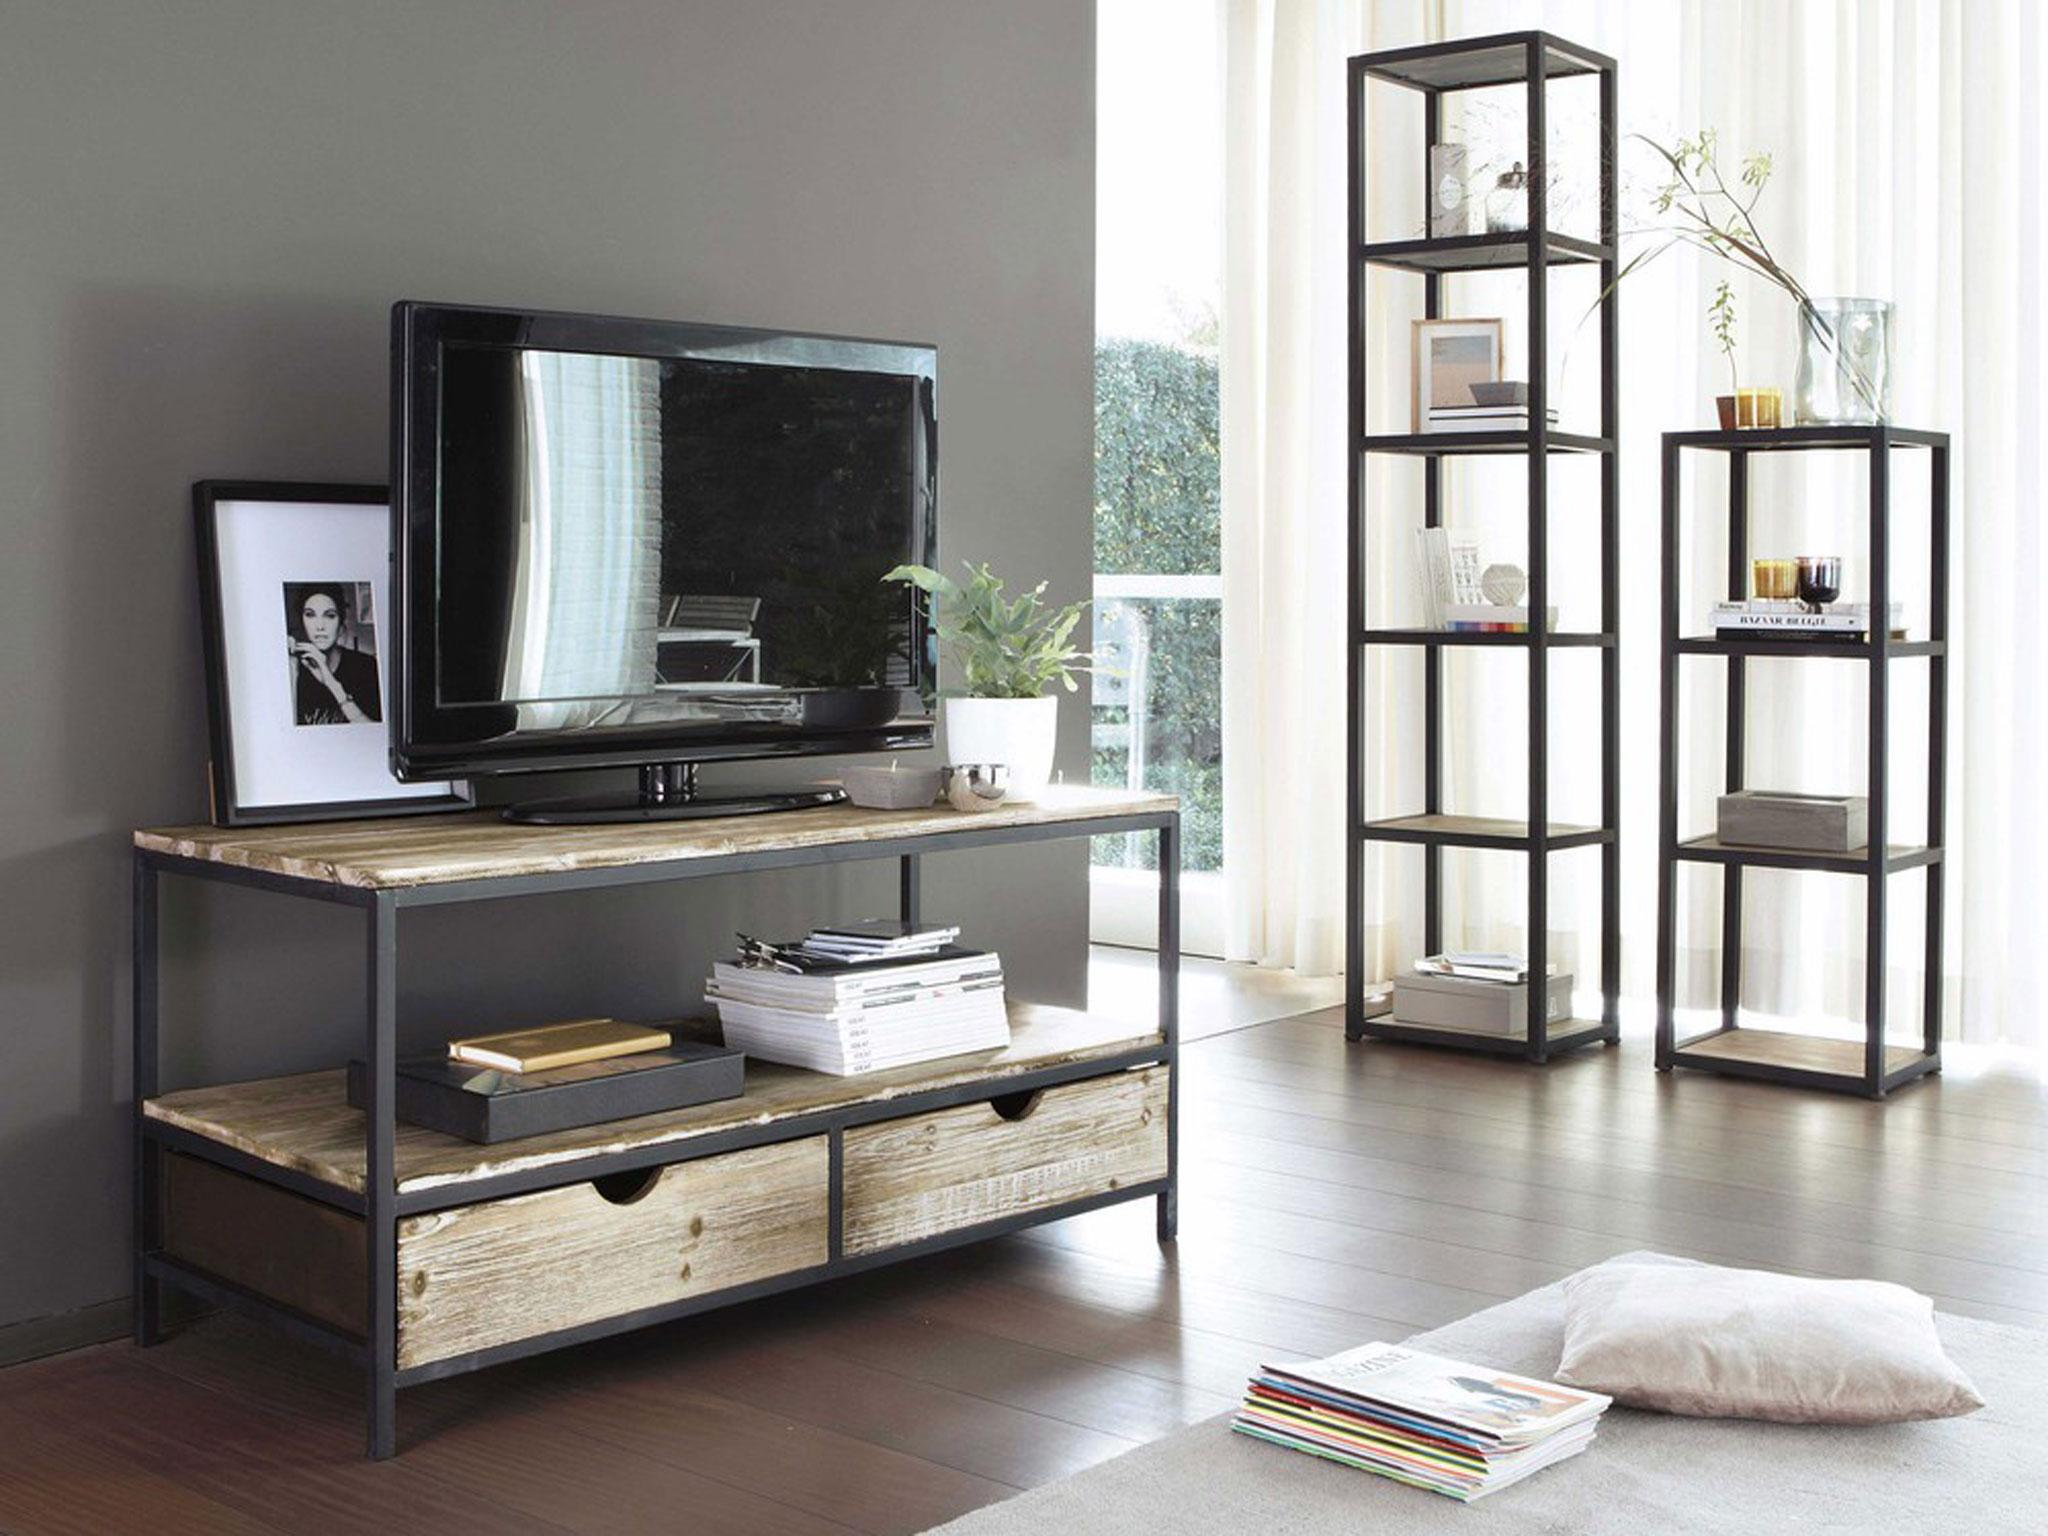 10 best TV stands